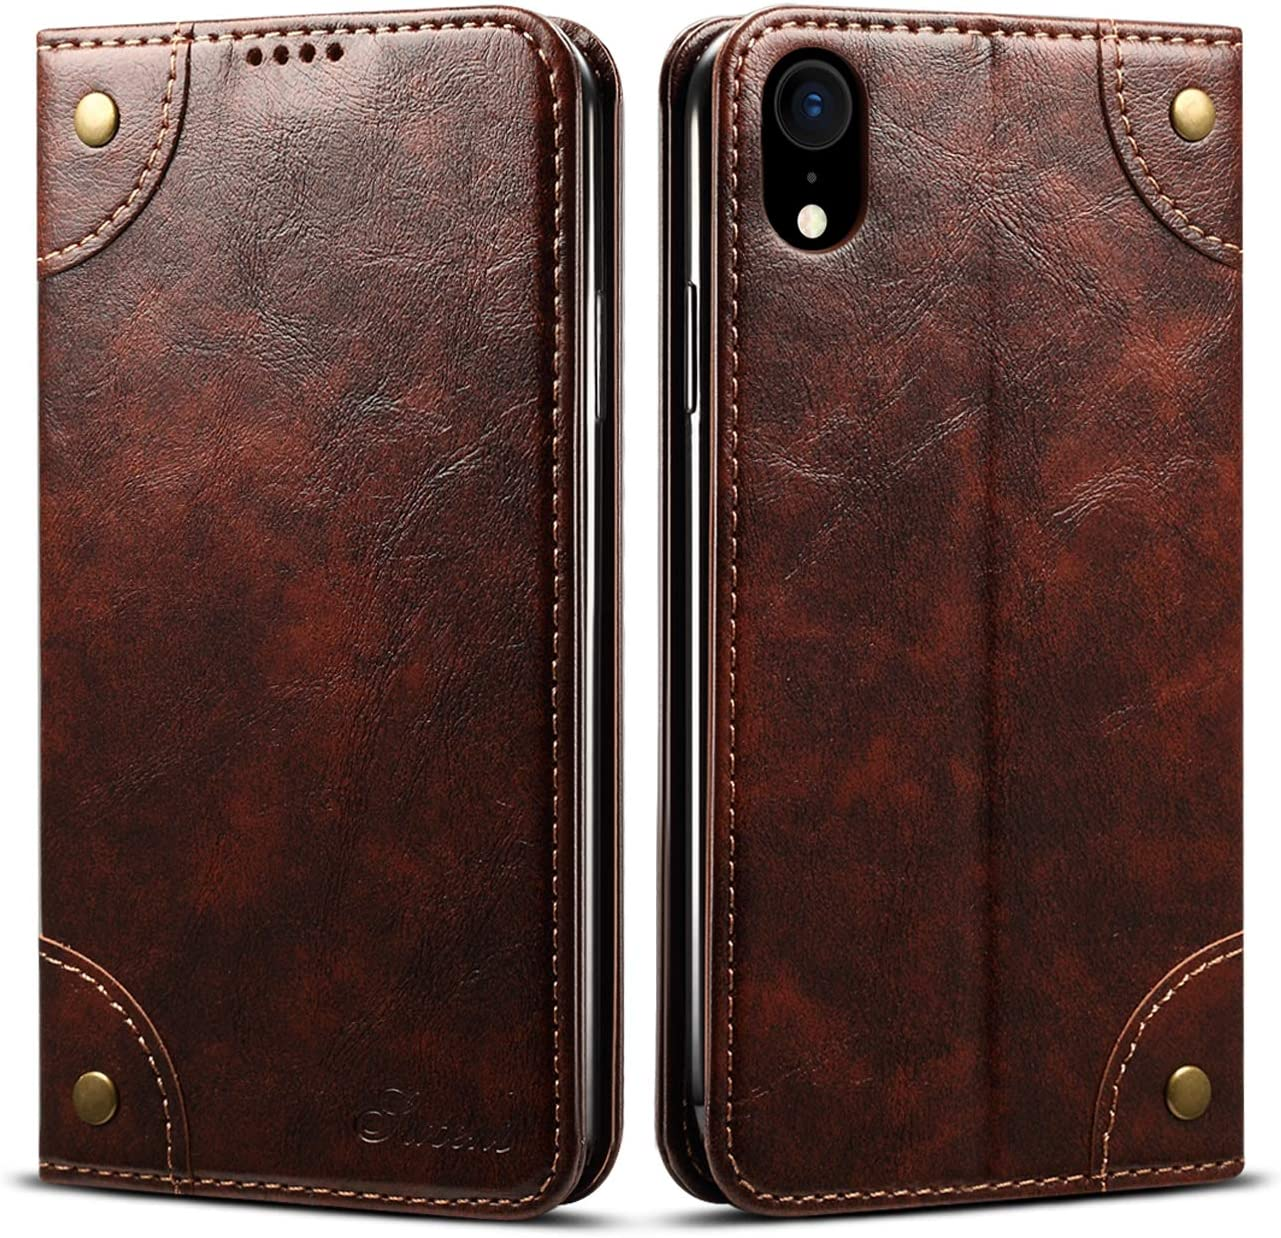 Retro Leather Wallet Case for iPhone Xs Max 6.5 inch Apple,Brown Folio Card Money Holder Cover Kickstand Protective Durable Men Women Unisex Fashion Shell